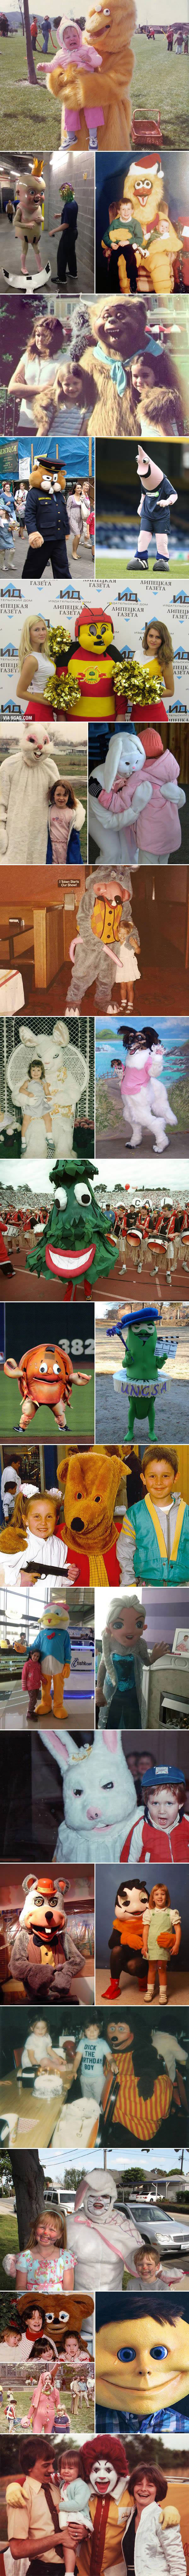 the 26 creepiest mascots you cannot unsee, wtf, fail